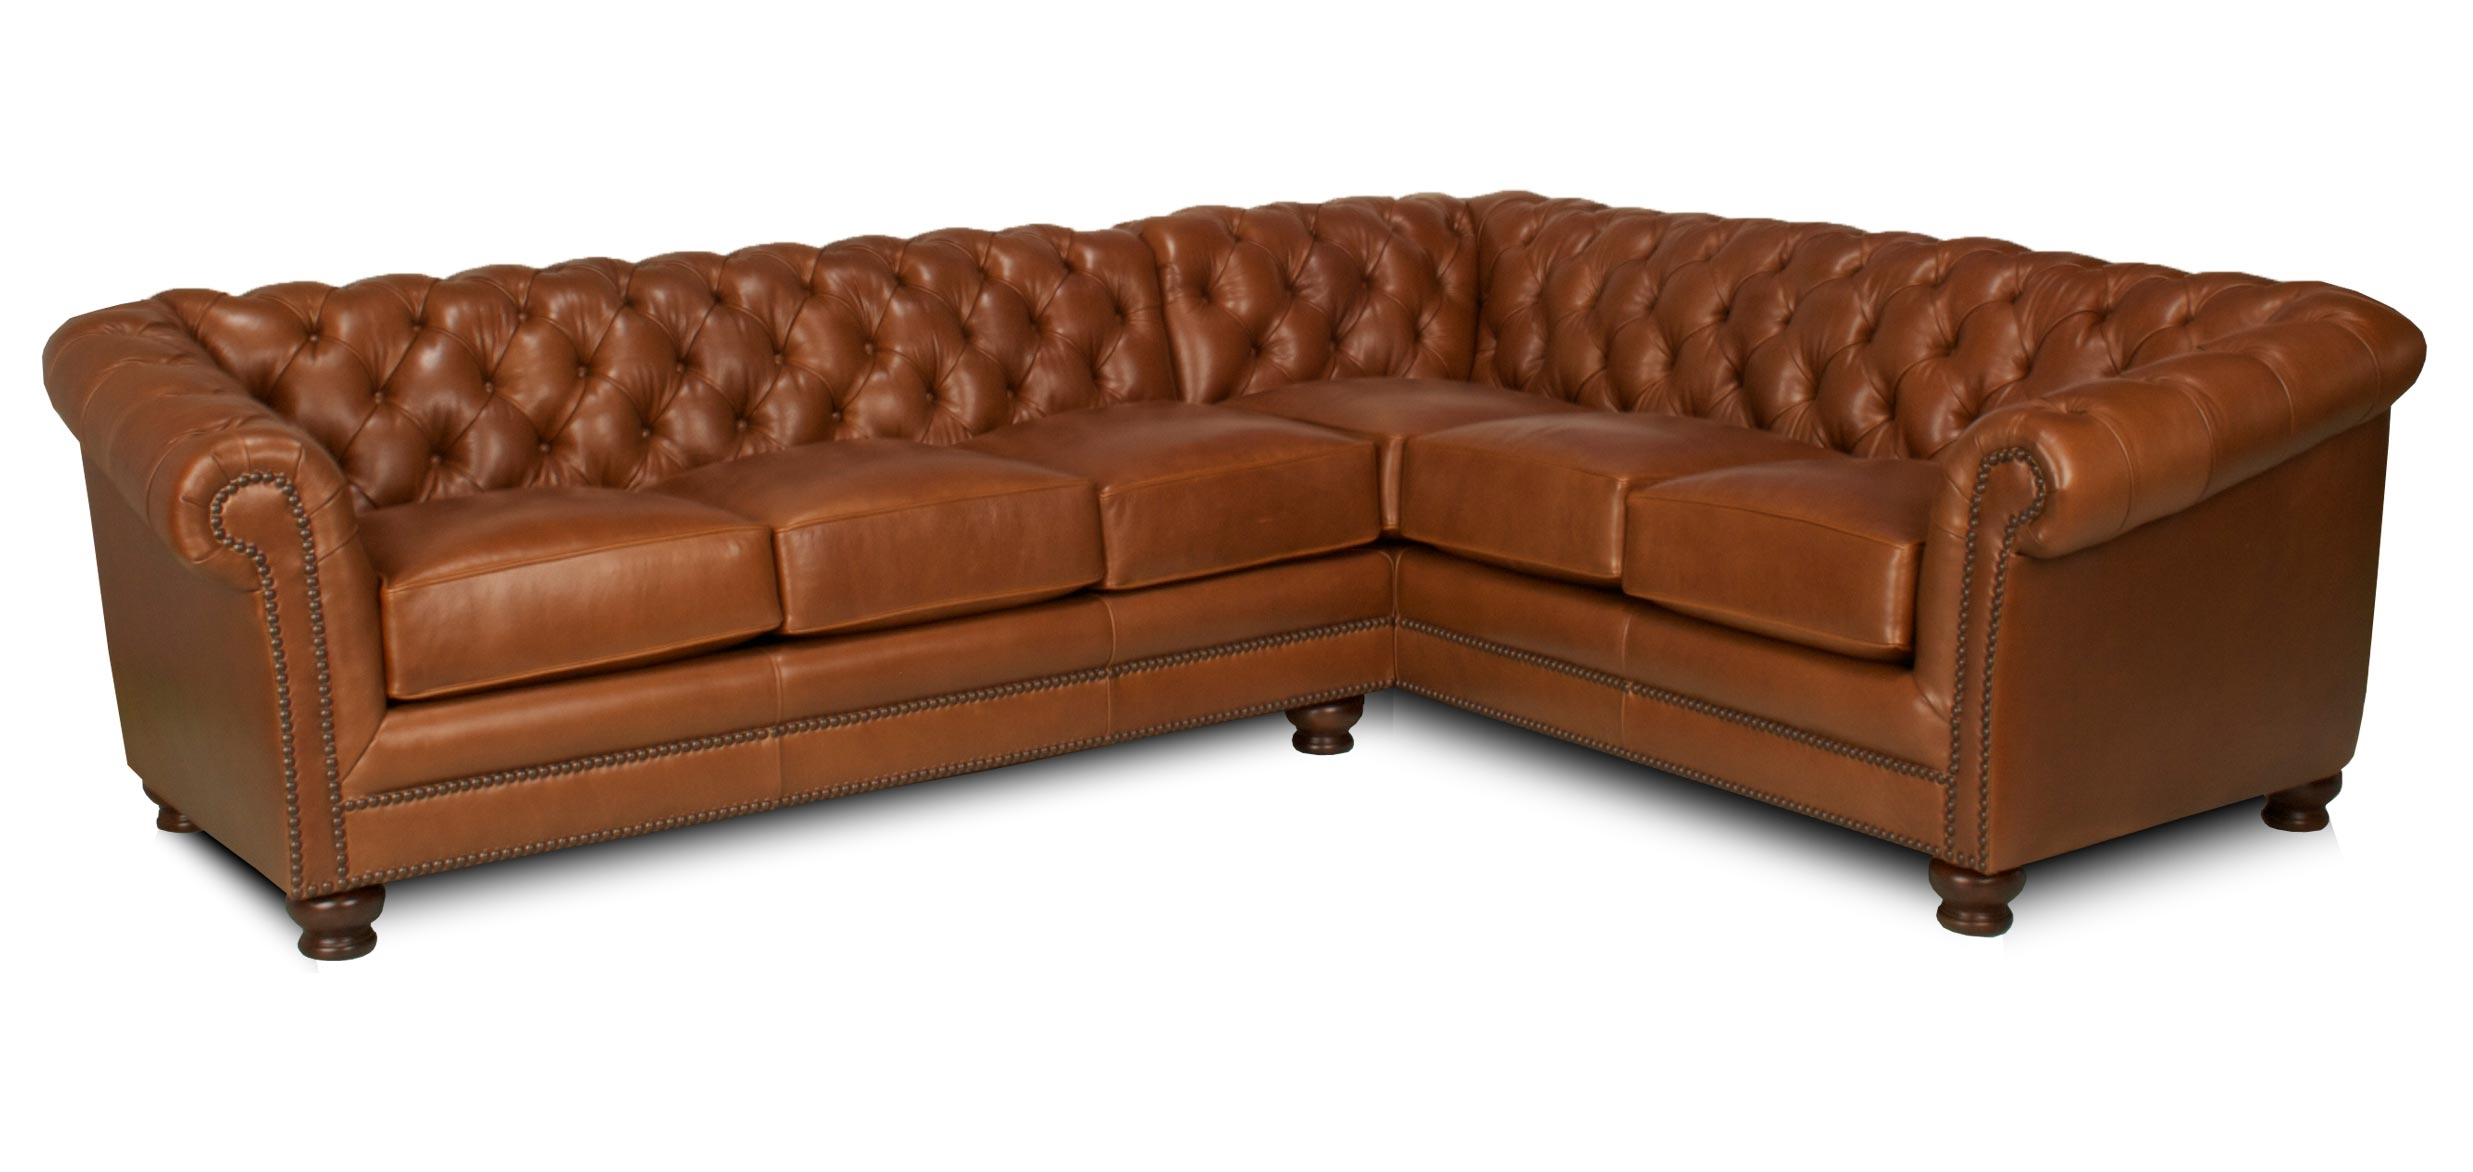 15 Collection Of Small Chesterfield Sofas Sofa Ideas